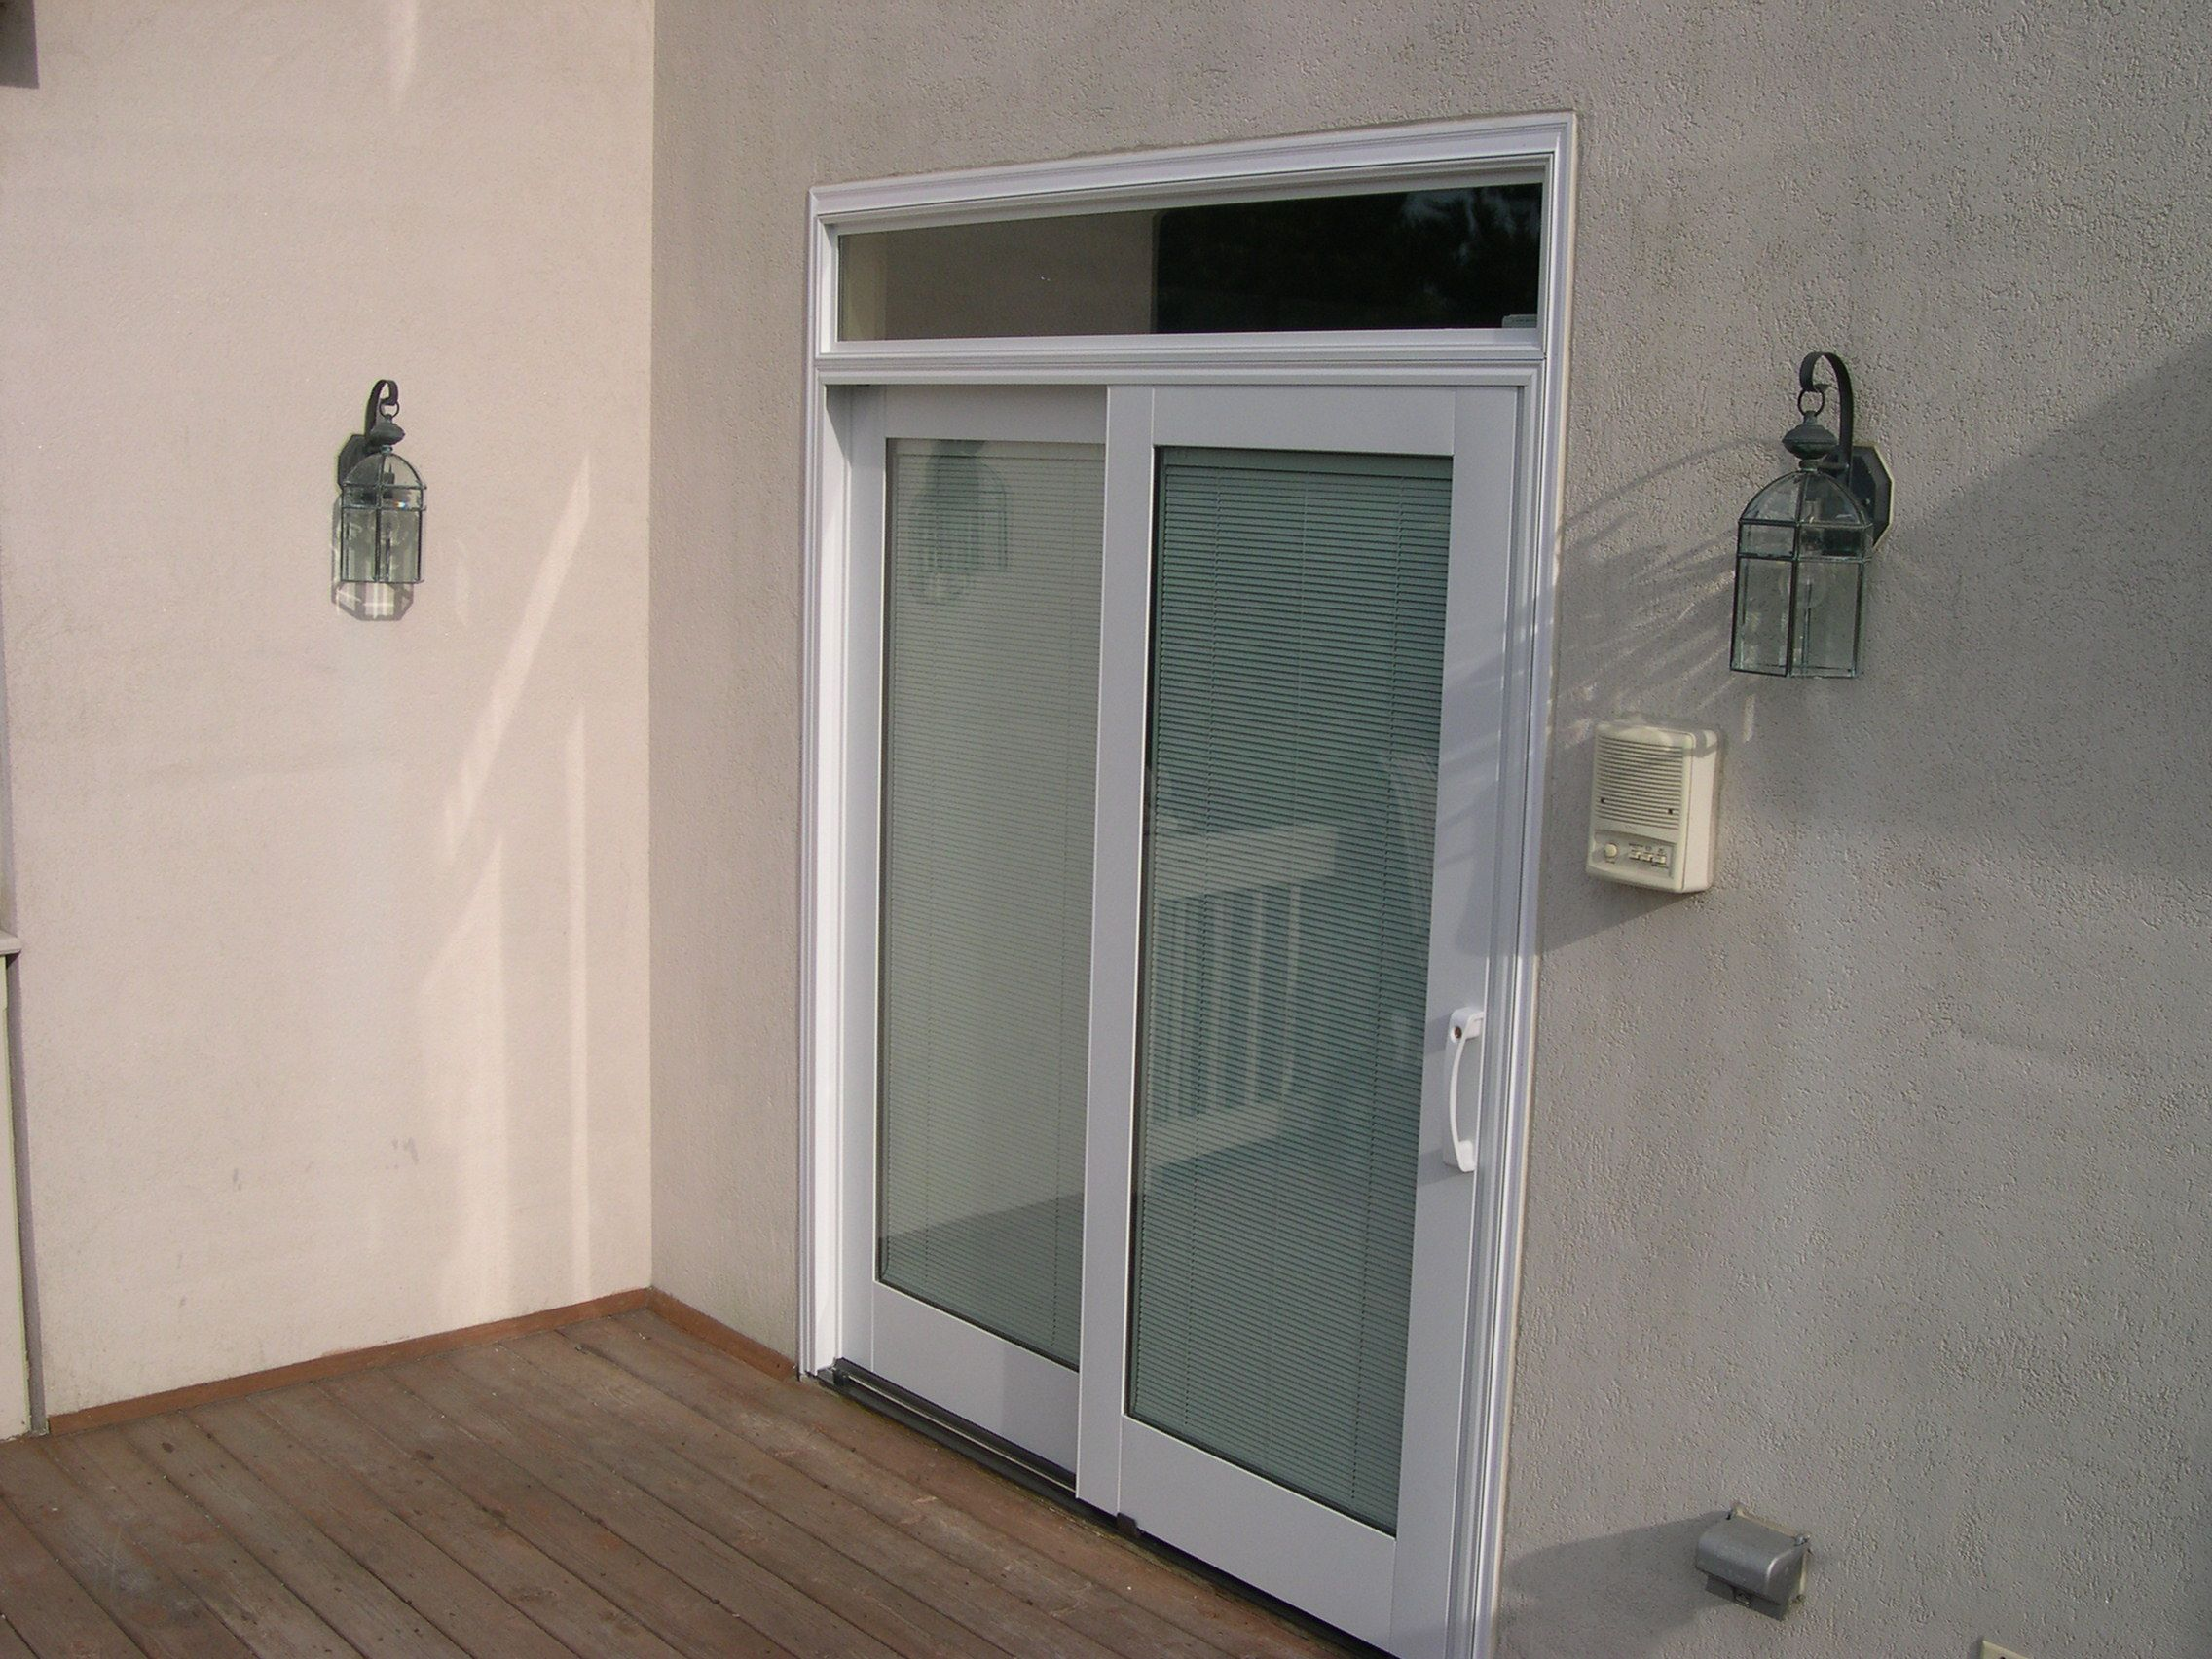 pin com flint house doors fiberglass in roller blackout theblindshop blind colour french a for to patio with blinds tooting